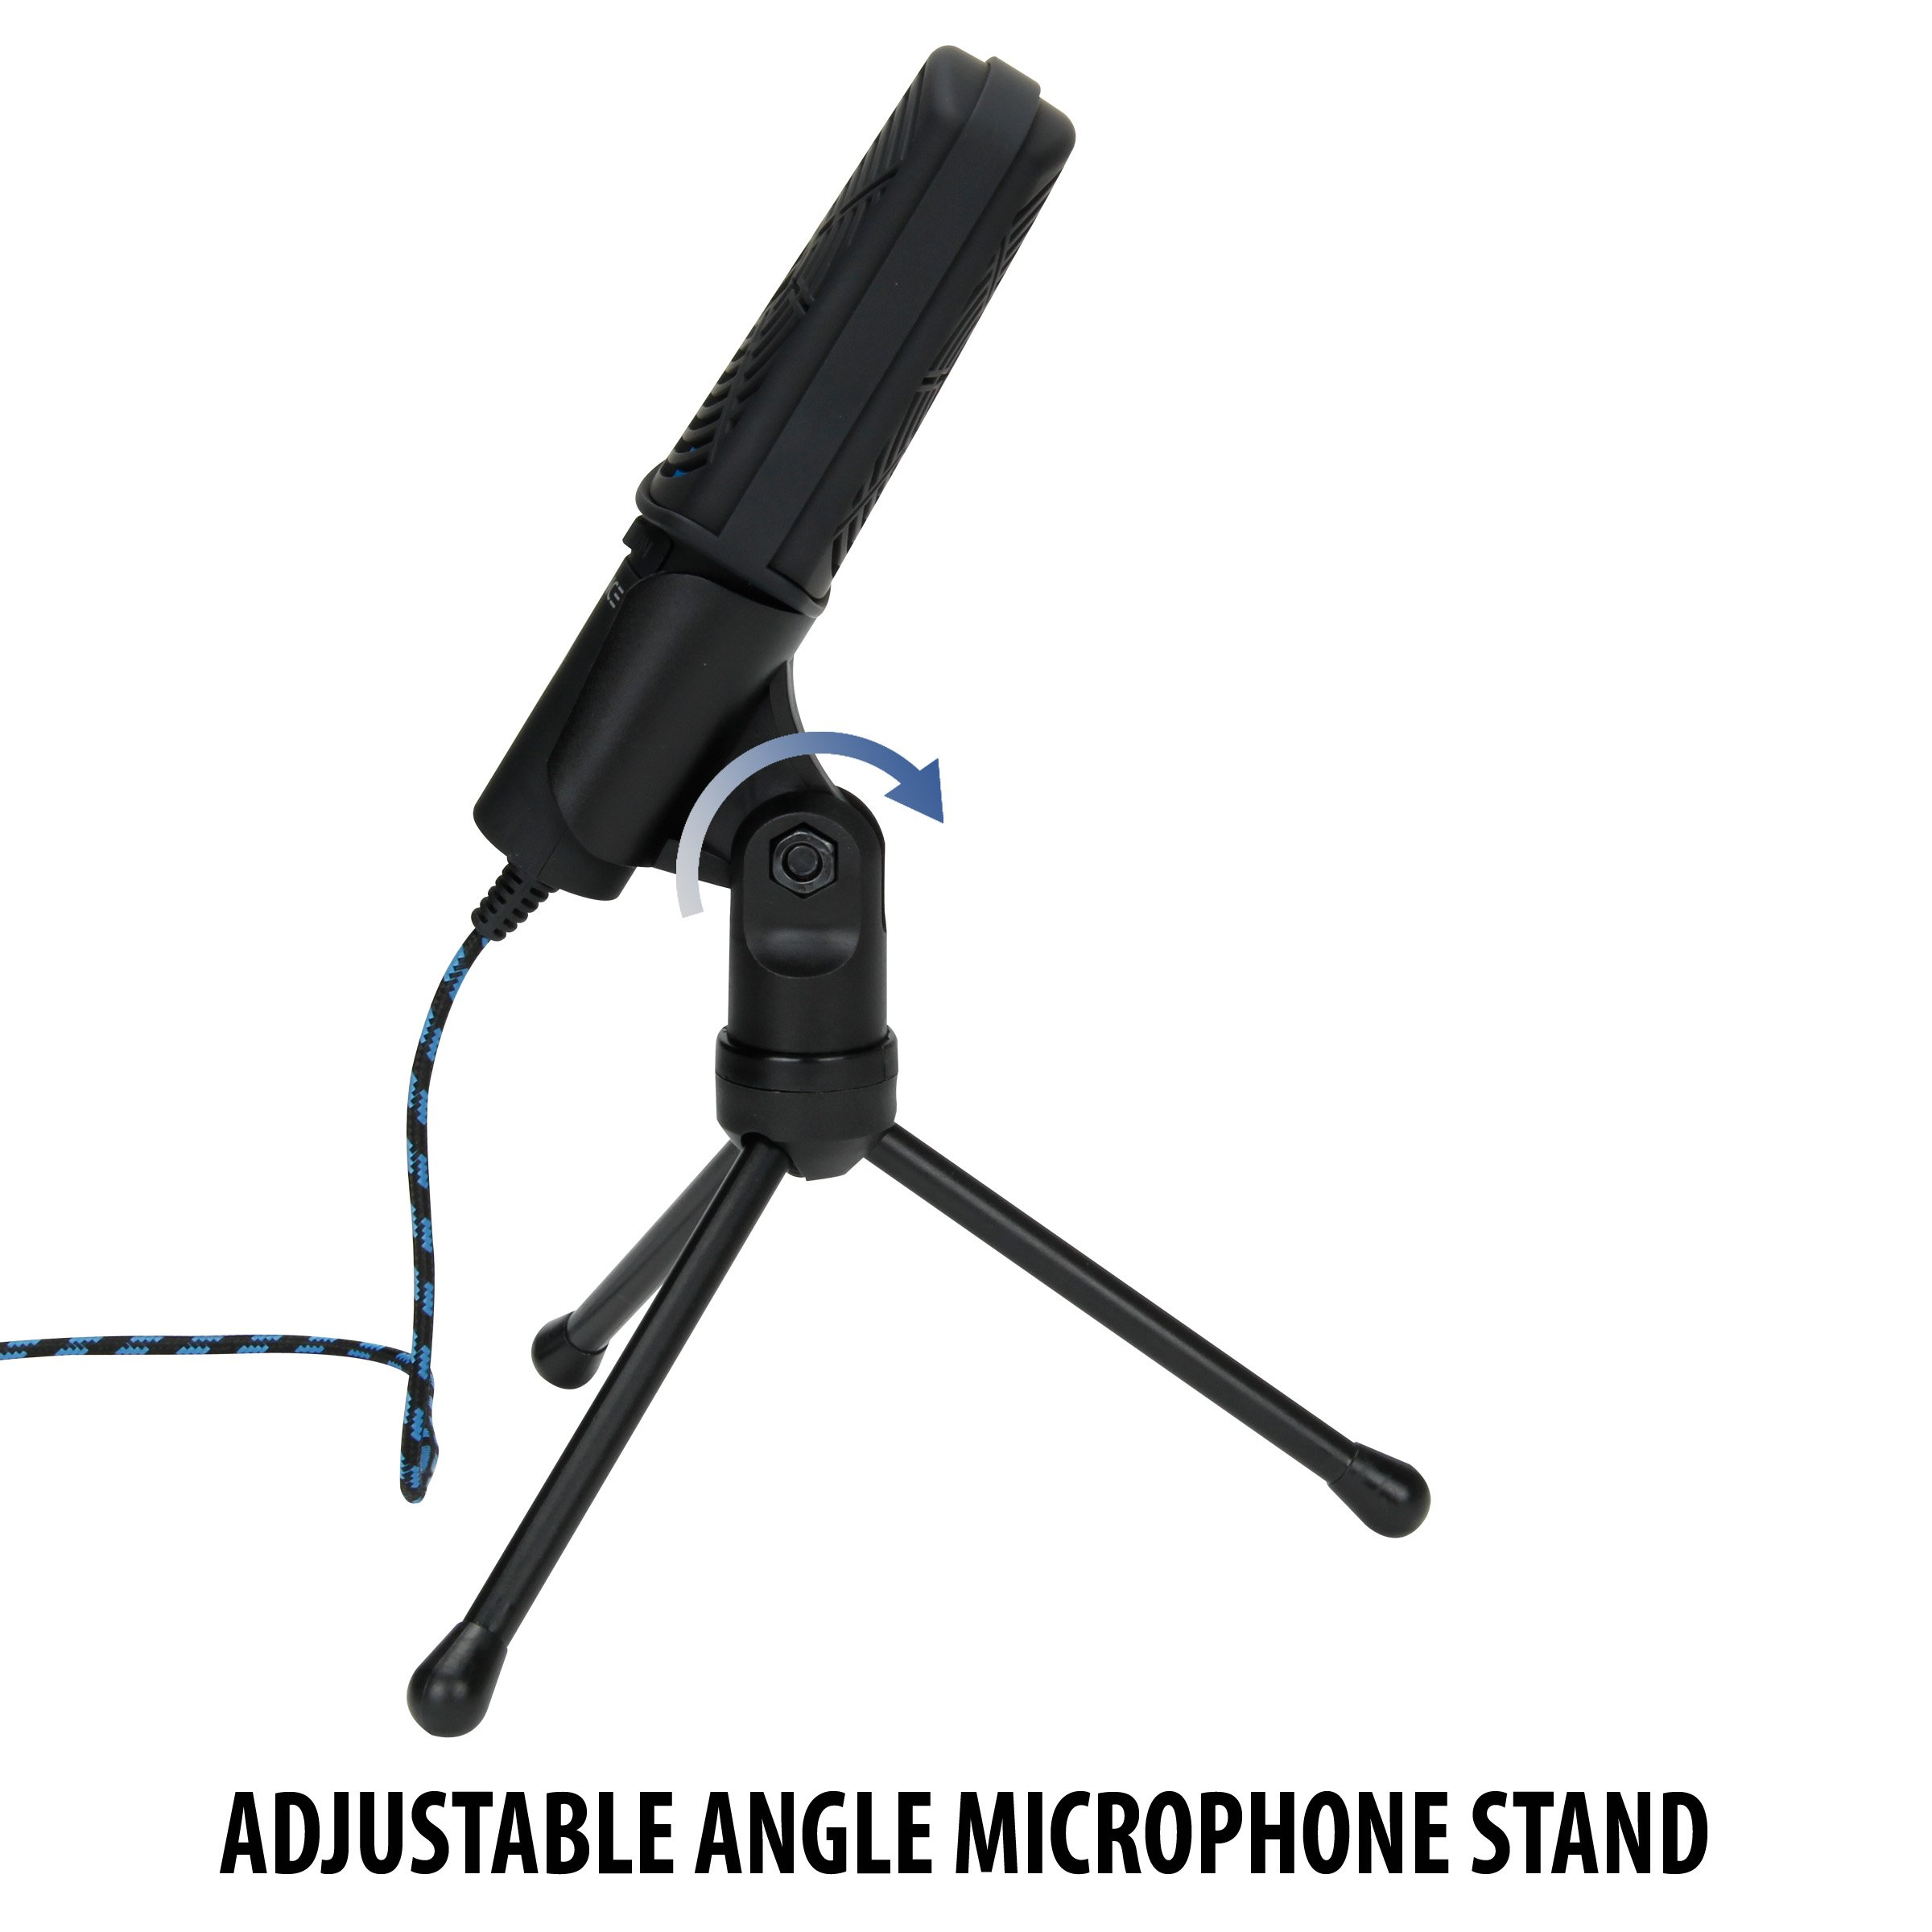 ENHANCE USB Condenser Gaming Microphone - Computer Desktop Mic for Streaming & Recording with Adjustable Stand Design and Mute Switch - For Skype, Conference Calls, Twitch, Youtube, and Discord - Blue by ENHANCE (Image #5)